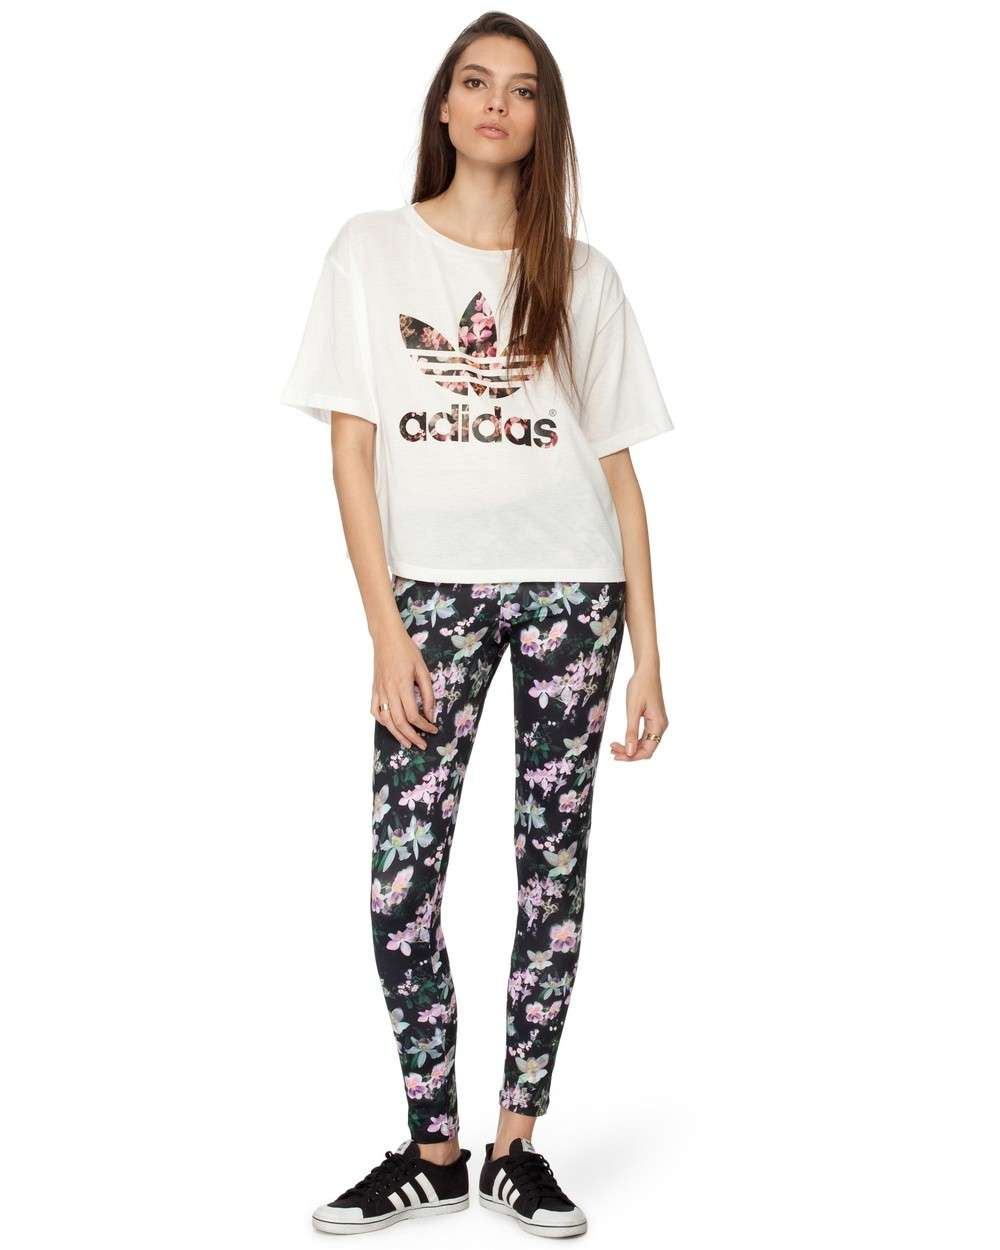 T-shirt adidas e leggings